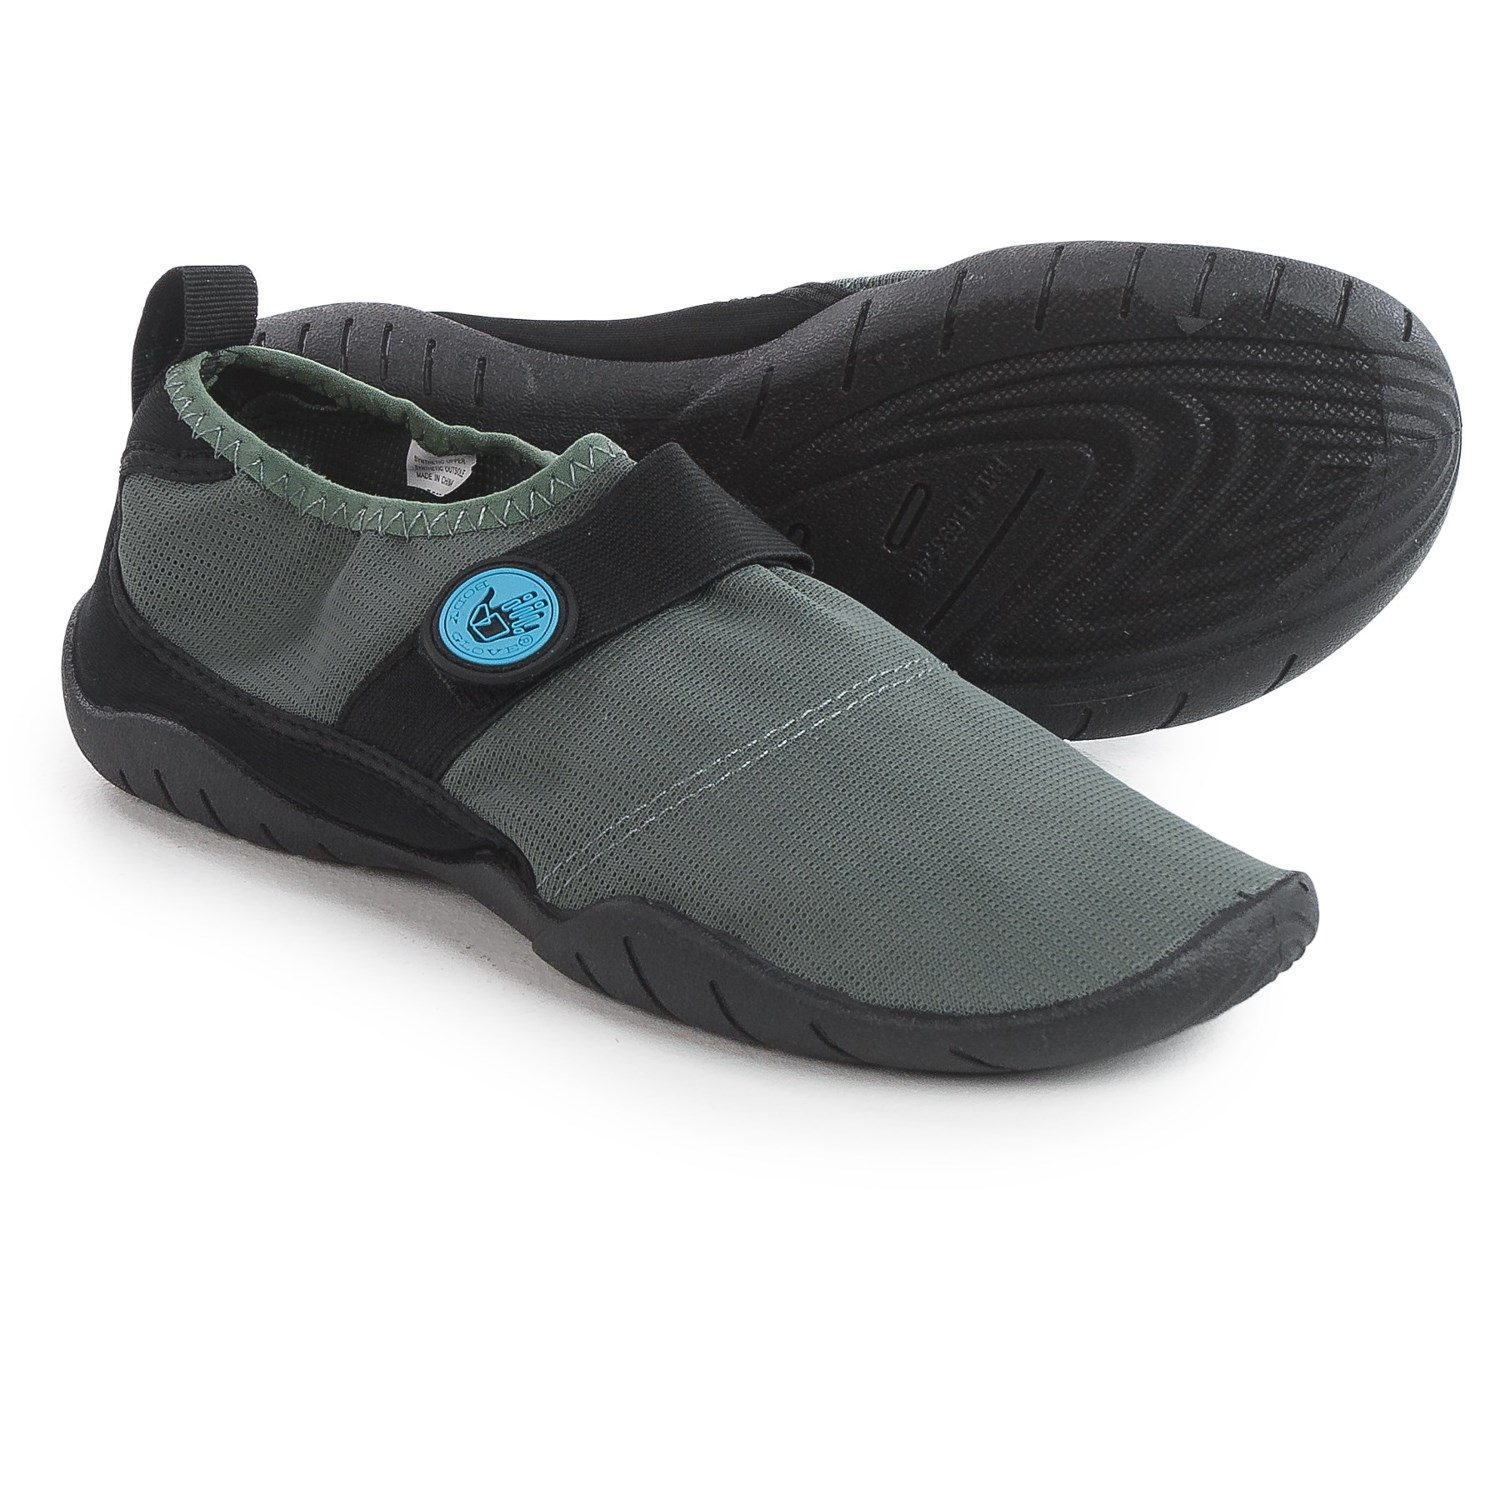 Body Glove Classic Water Shoes (For Men) - Save 40%